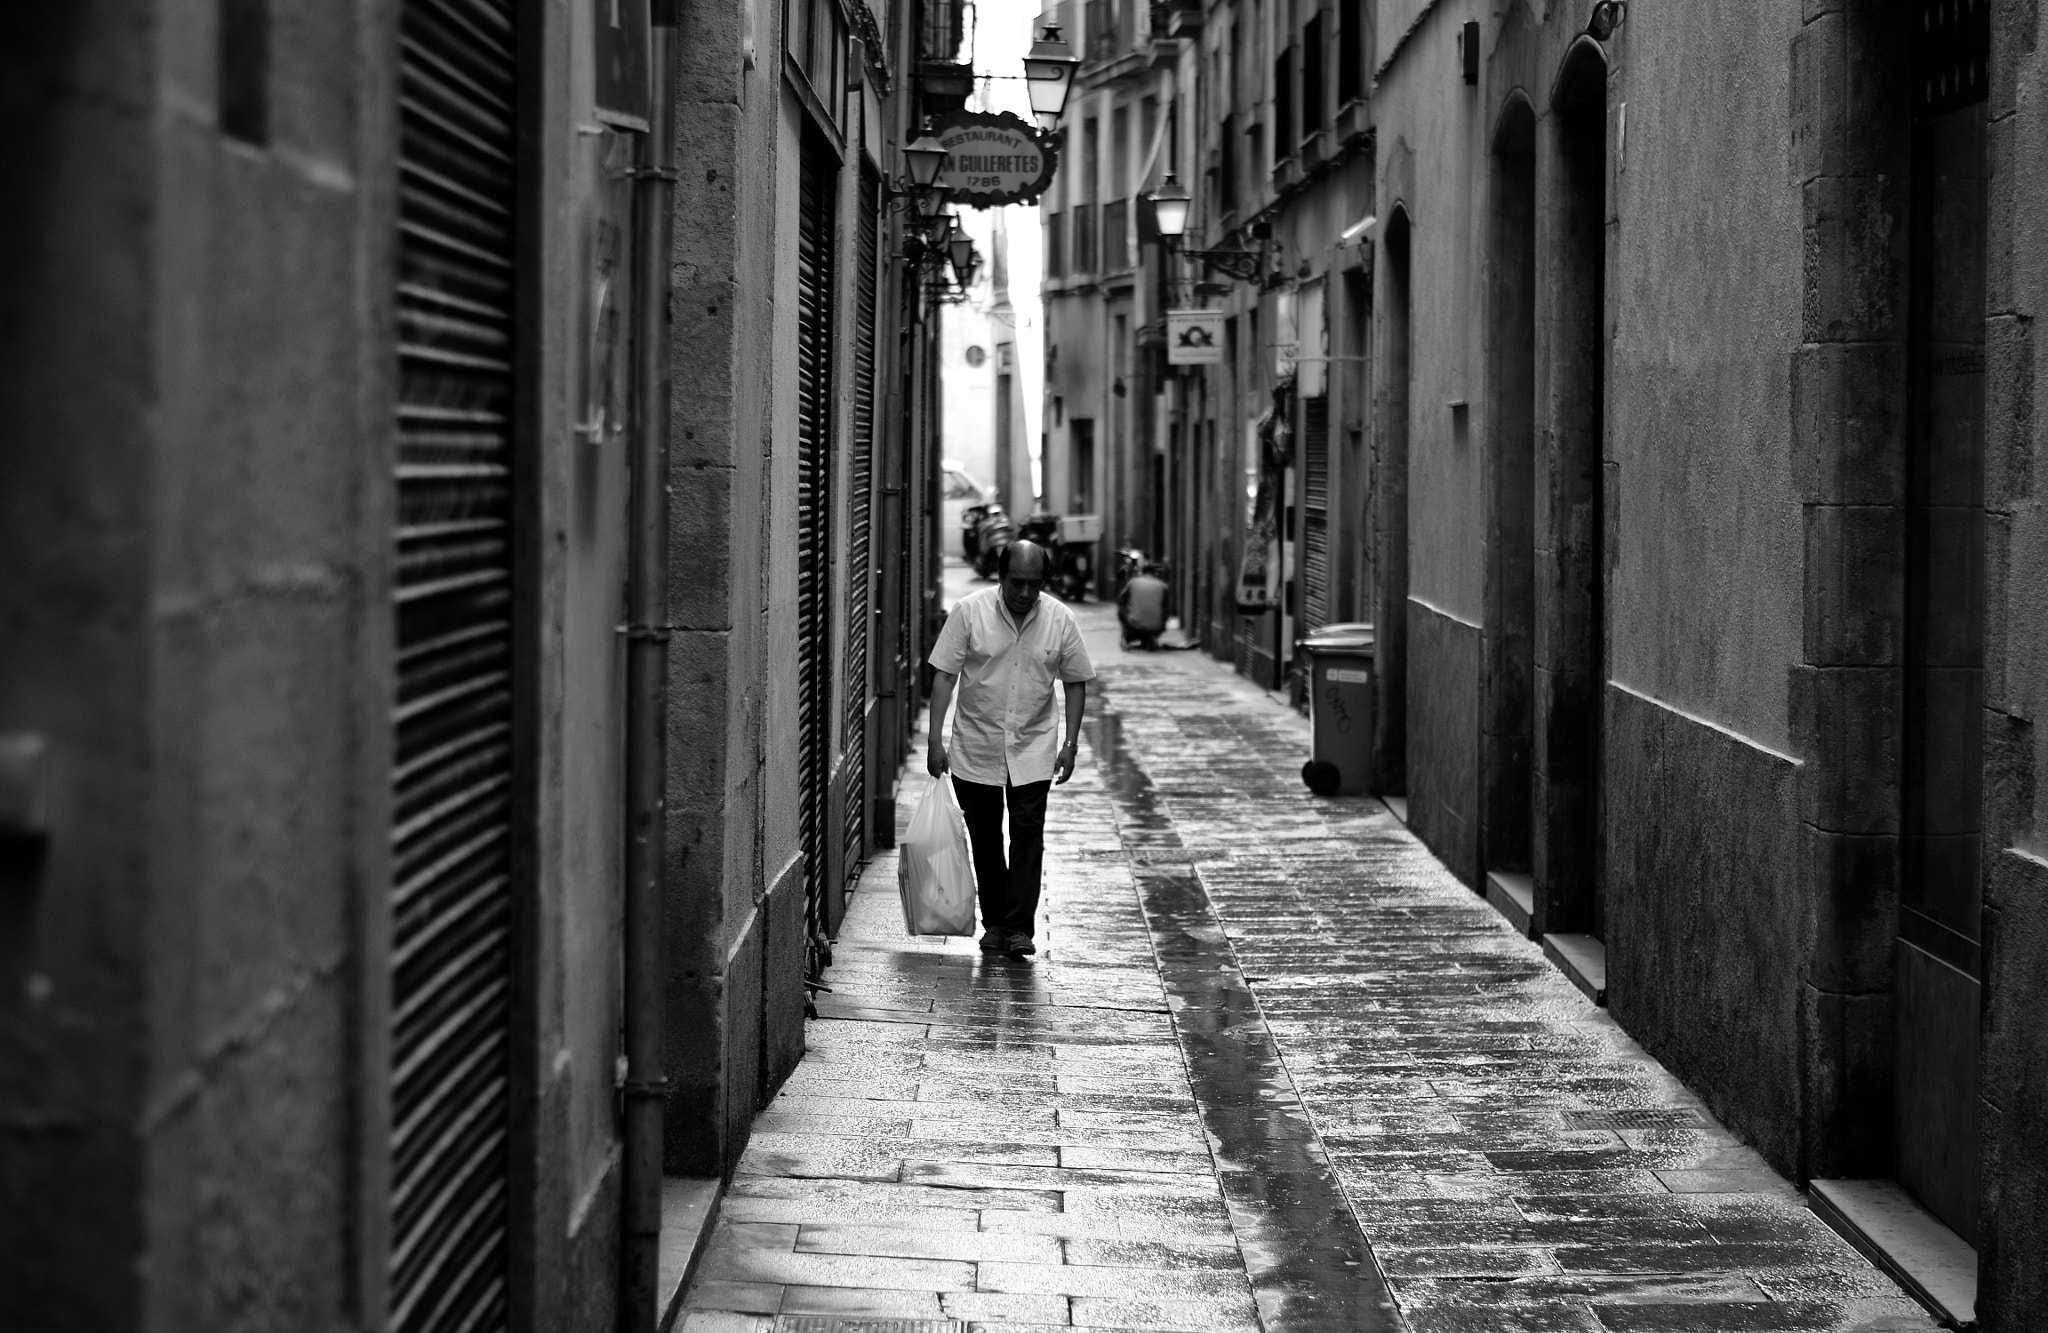 Photograph Streets of Barcelona by Teo Gasparovic on 500px